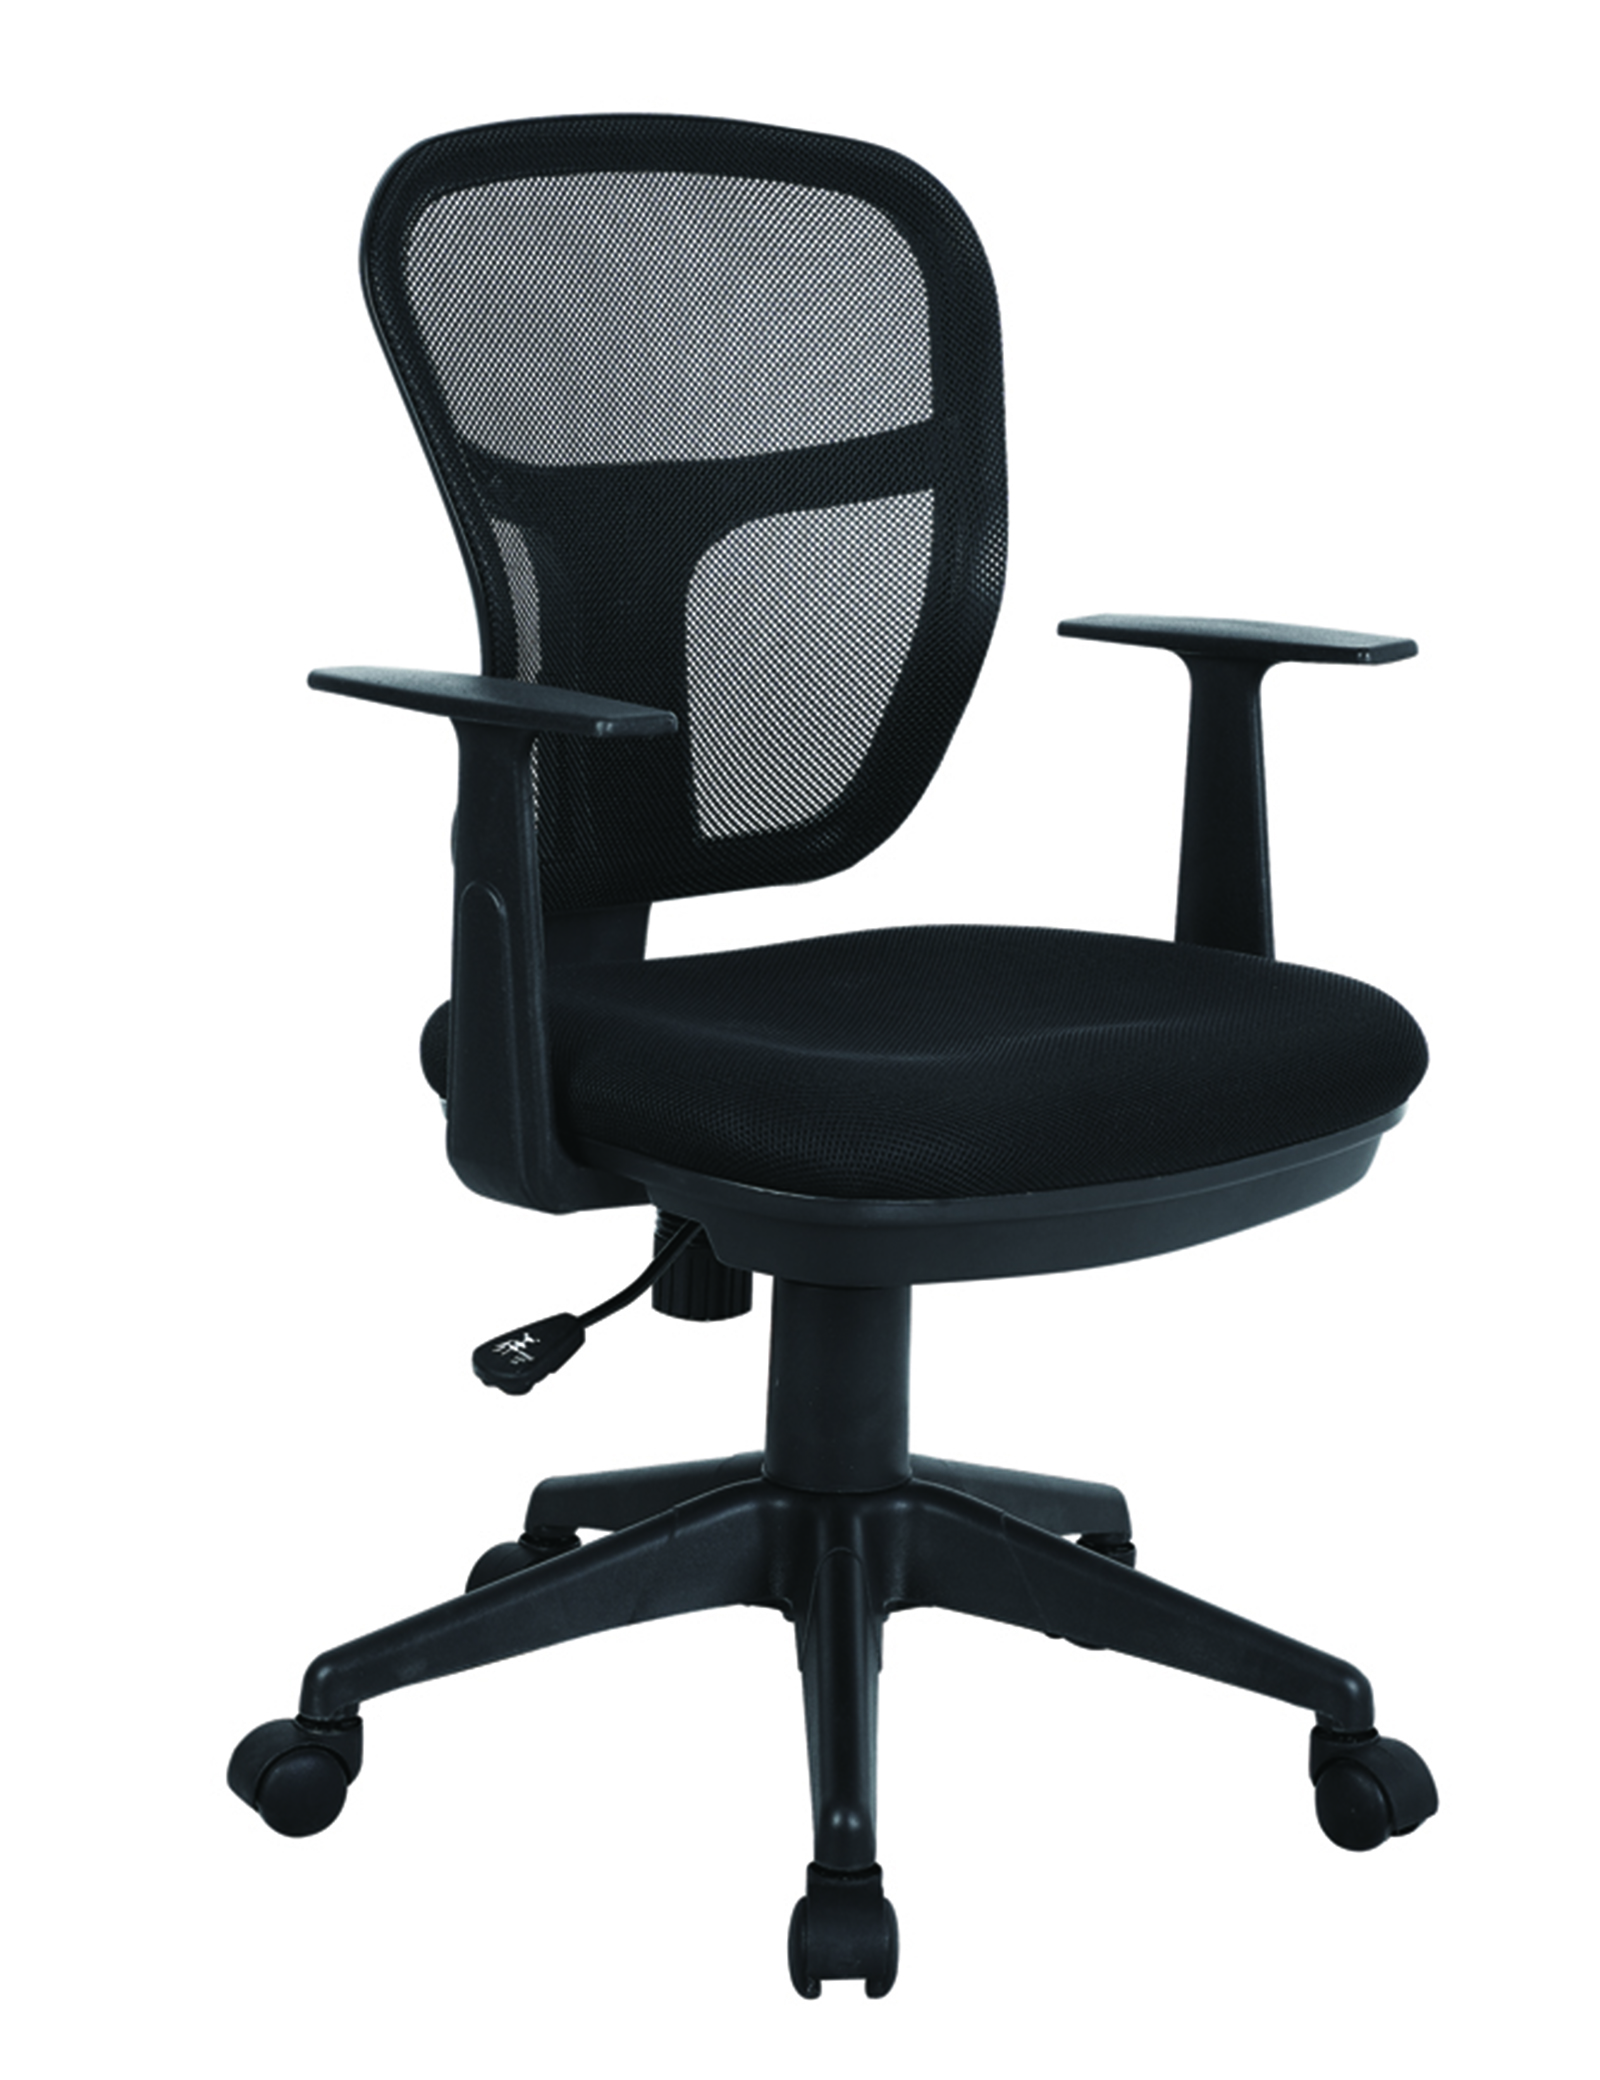 desk chair adjustable fishing hs code executive mesh fabric swivel computer study